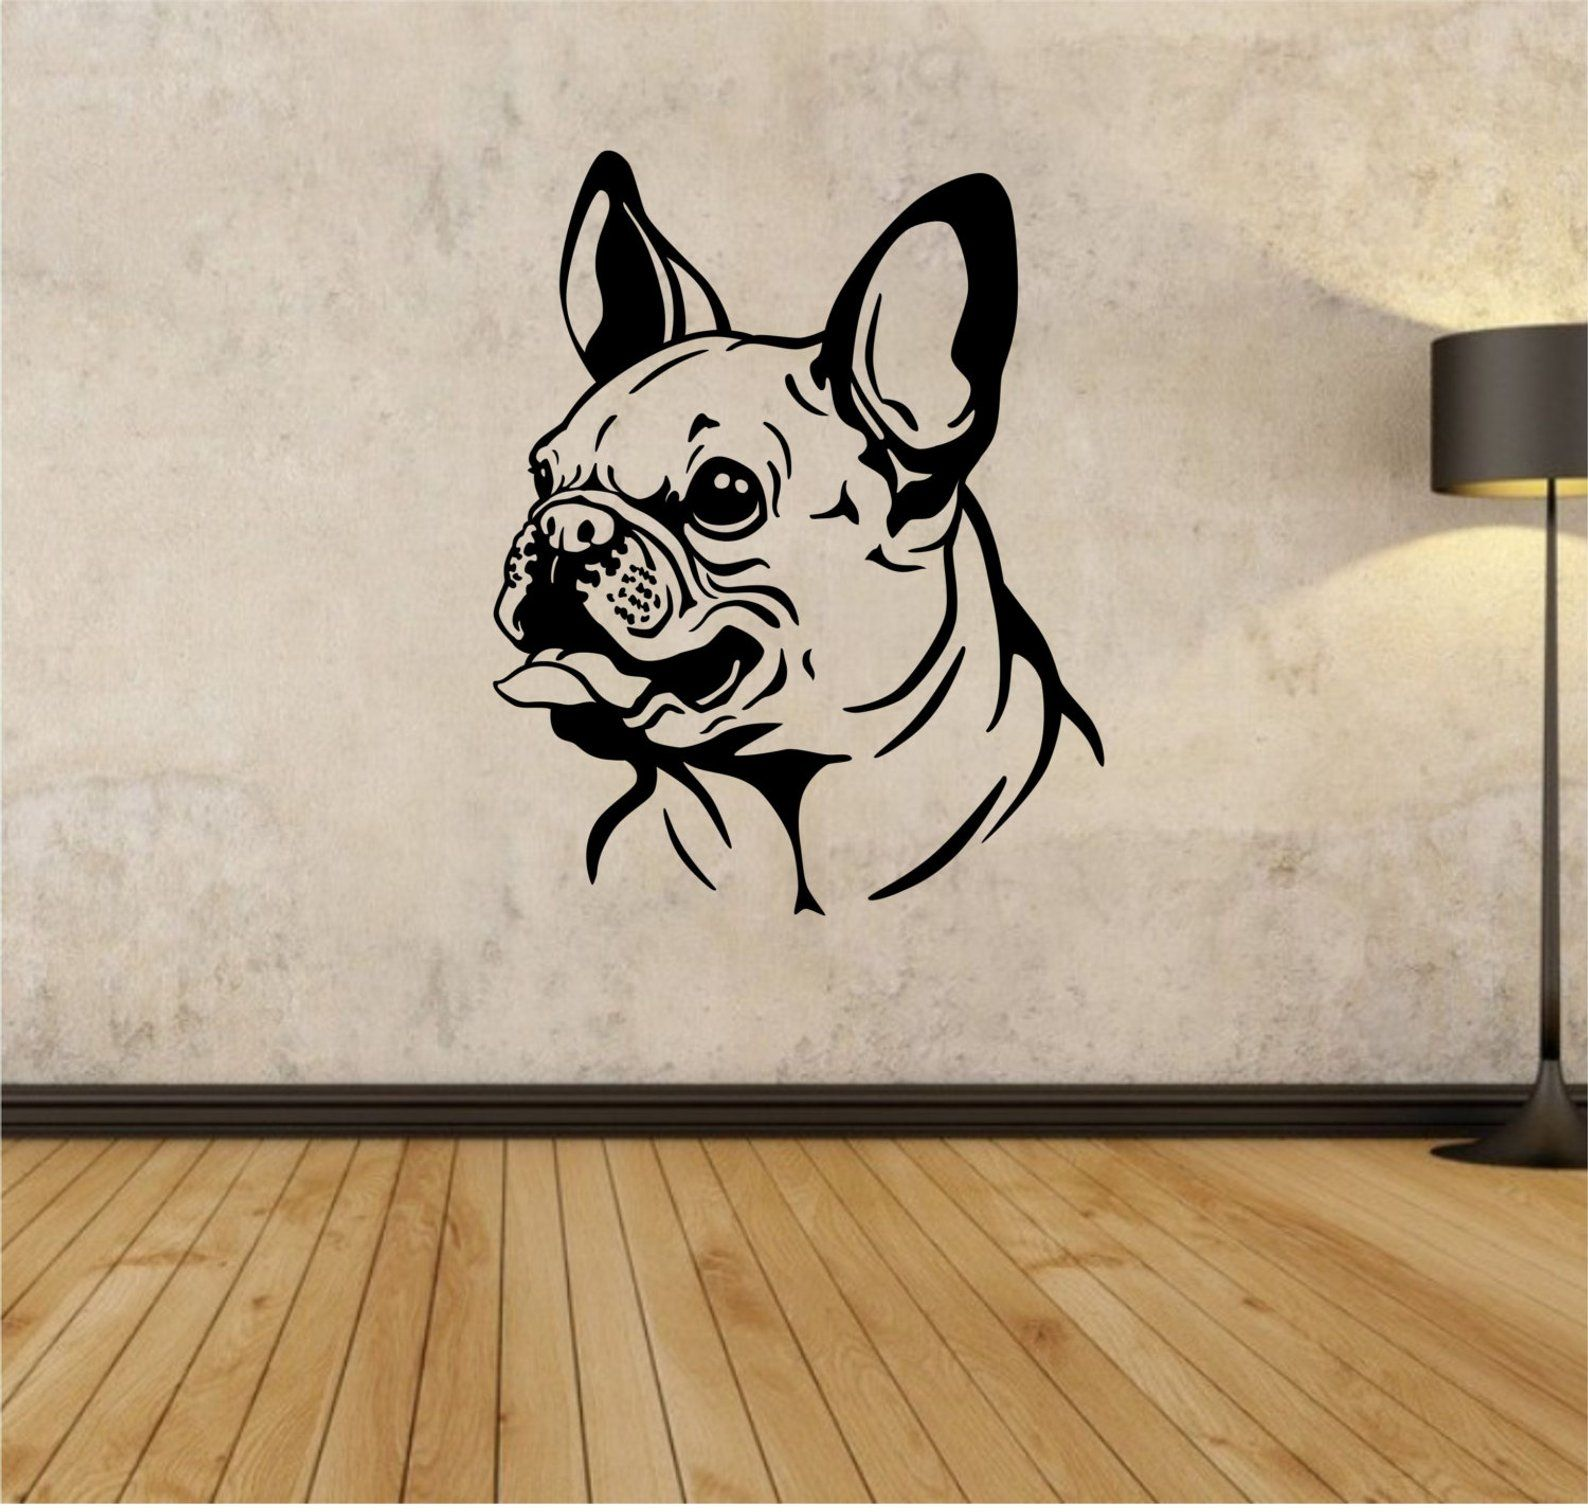 French Bulldog Wall Decal Sticker Art Decor Bedroom Design